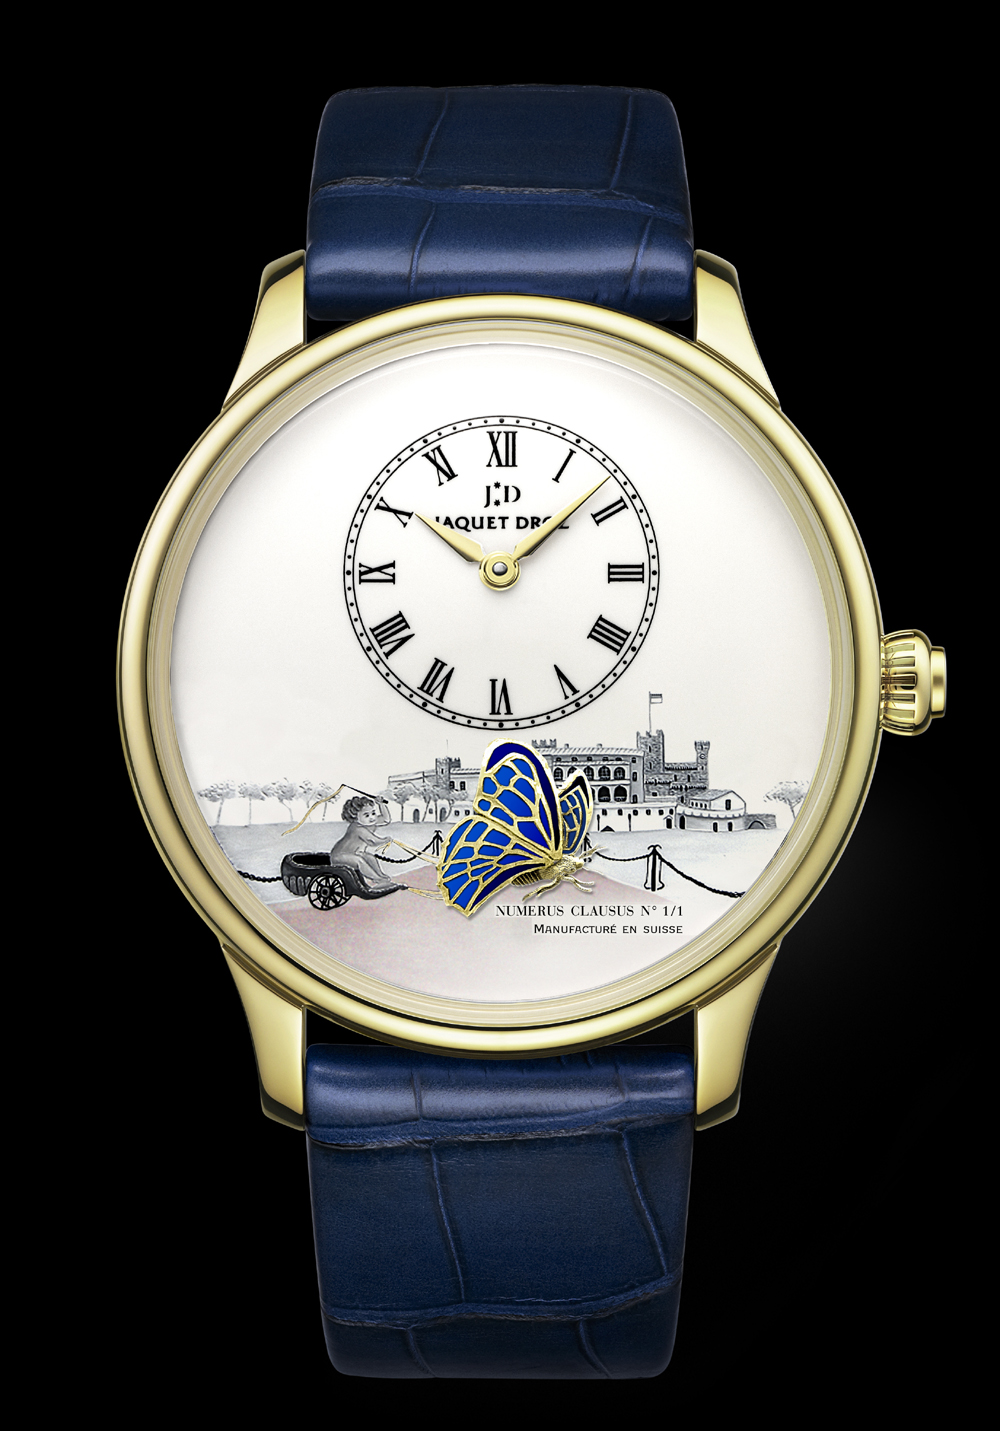 Montre Jaquet Droz The Loving Butterfly pour Only Watch 2013